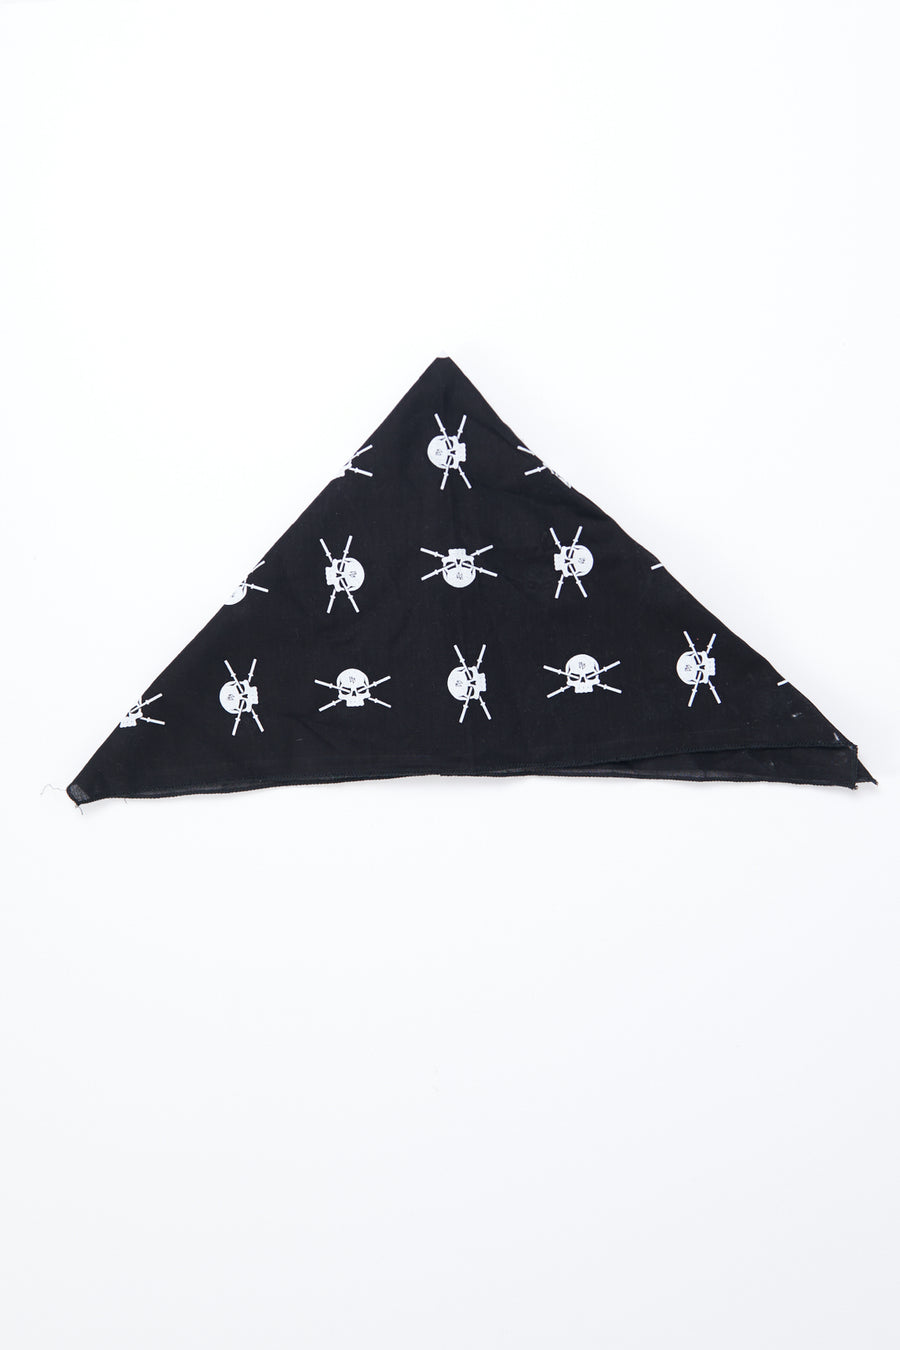 BB - Bandana (Black)